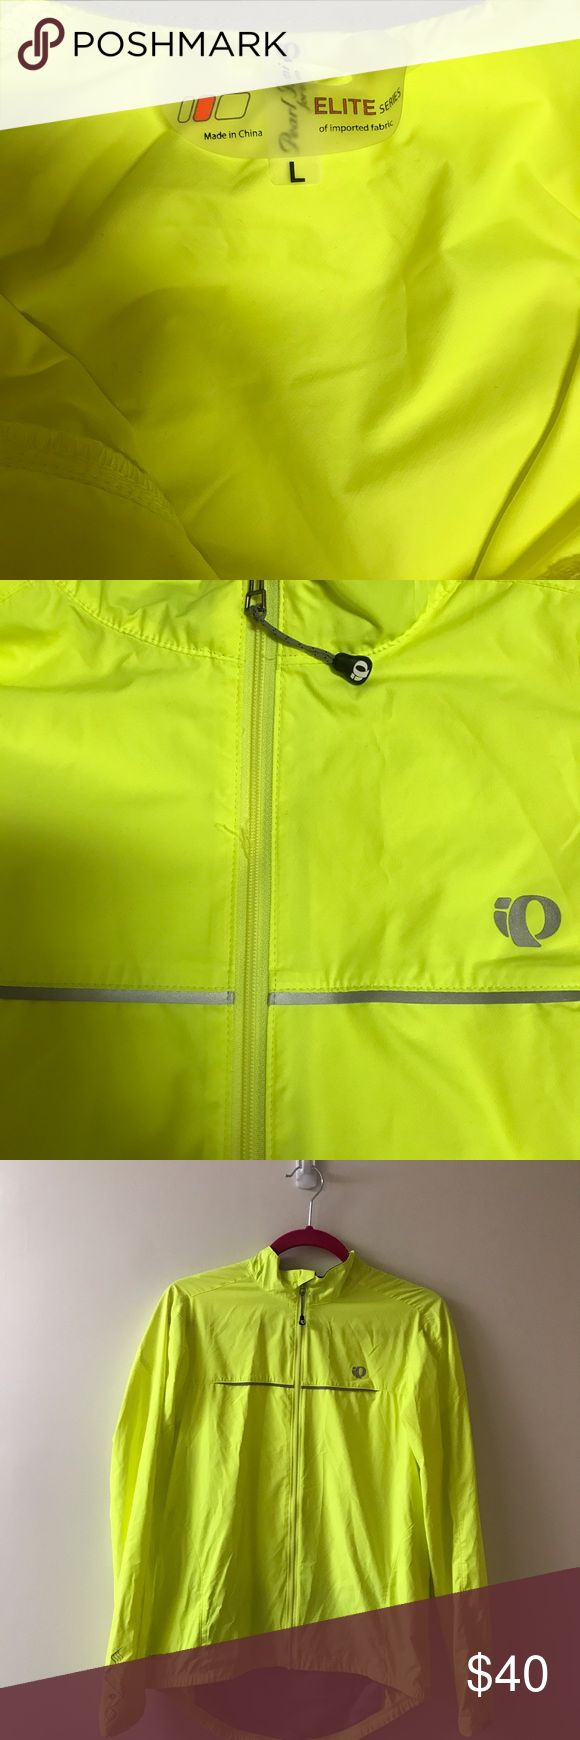 PEARL IZUMI- Yellow Women's Cycling Jacket This screaming yellow cycling jacket is perfect for wearing on a long bike ride or just as a fashion statement. Good quality and intense color give it a fun vibe! New without tags condition with no flaws. True to size. 🌷Offers always welcome!🌷 Pearl Izumi Jackets & Coats